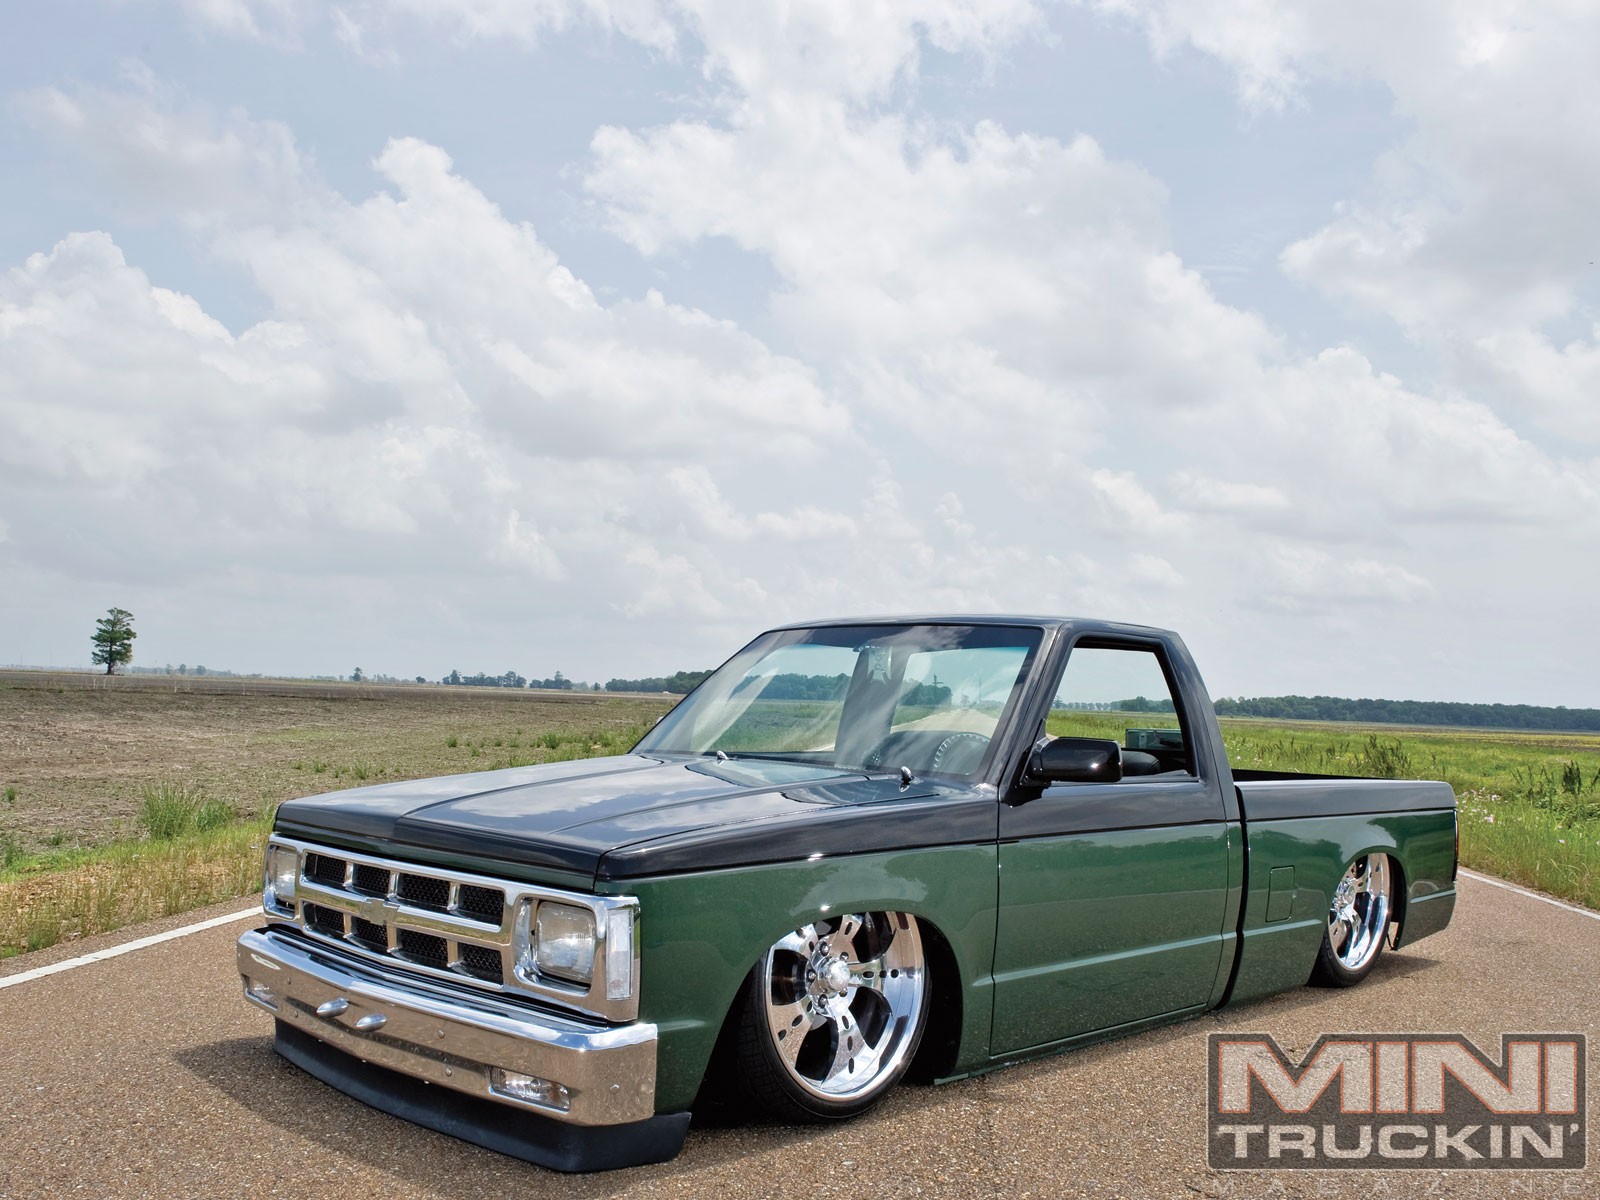 Mini Truckin Desktop Wallpapers March 2011 1987 Chevy S10 Front 1600x1200